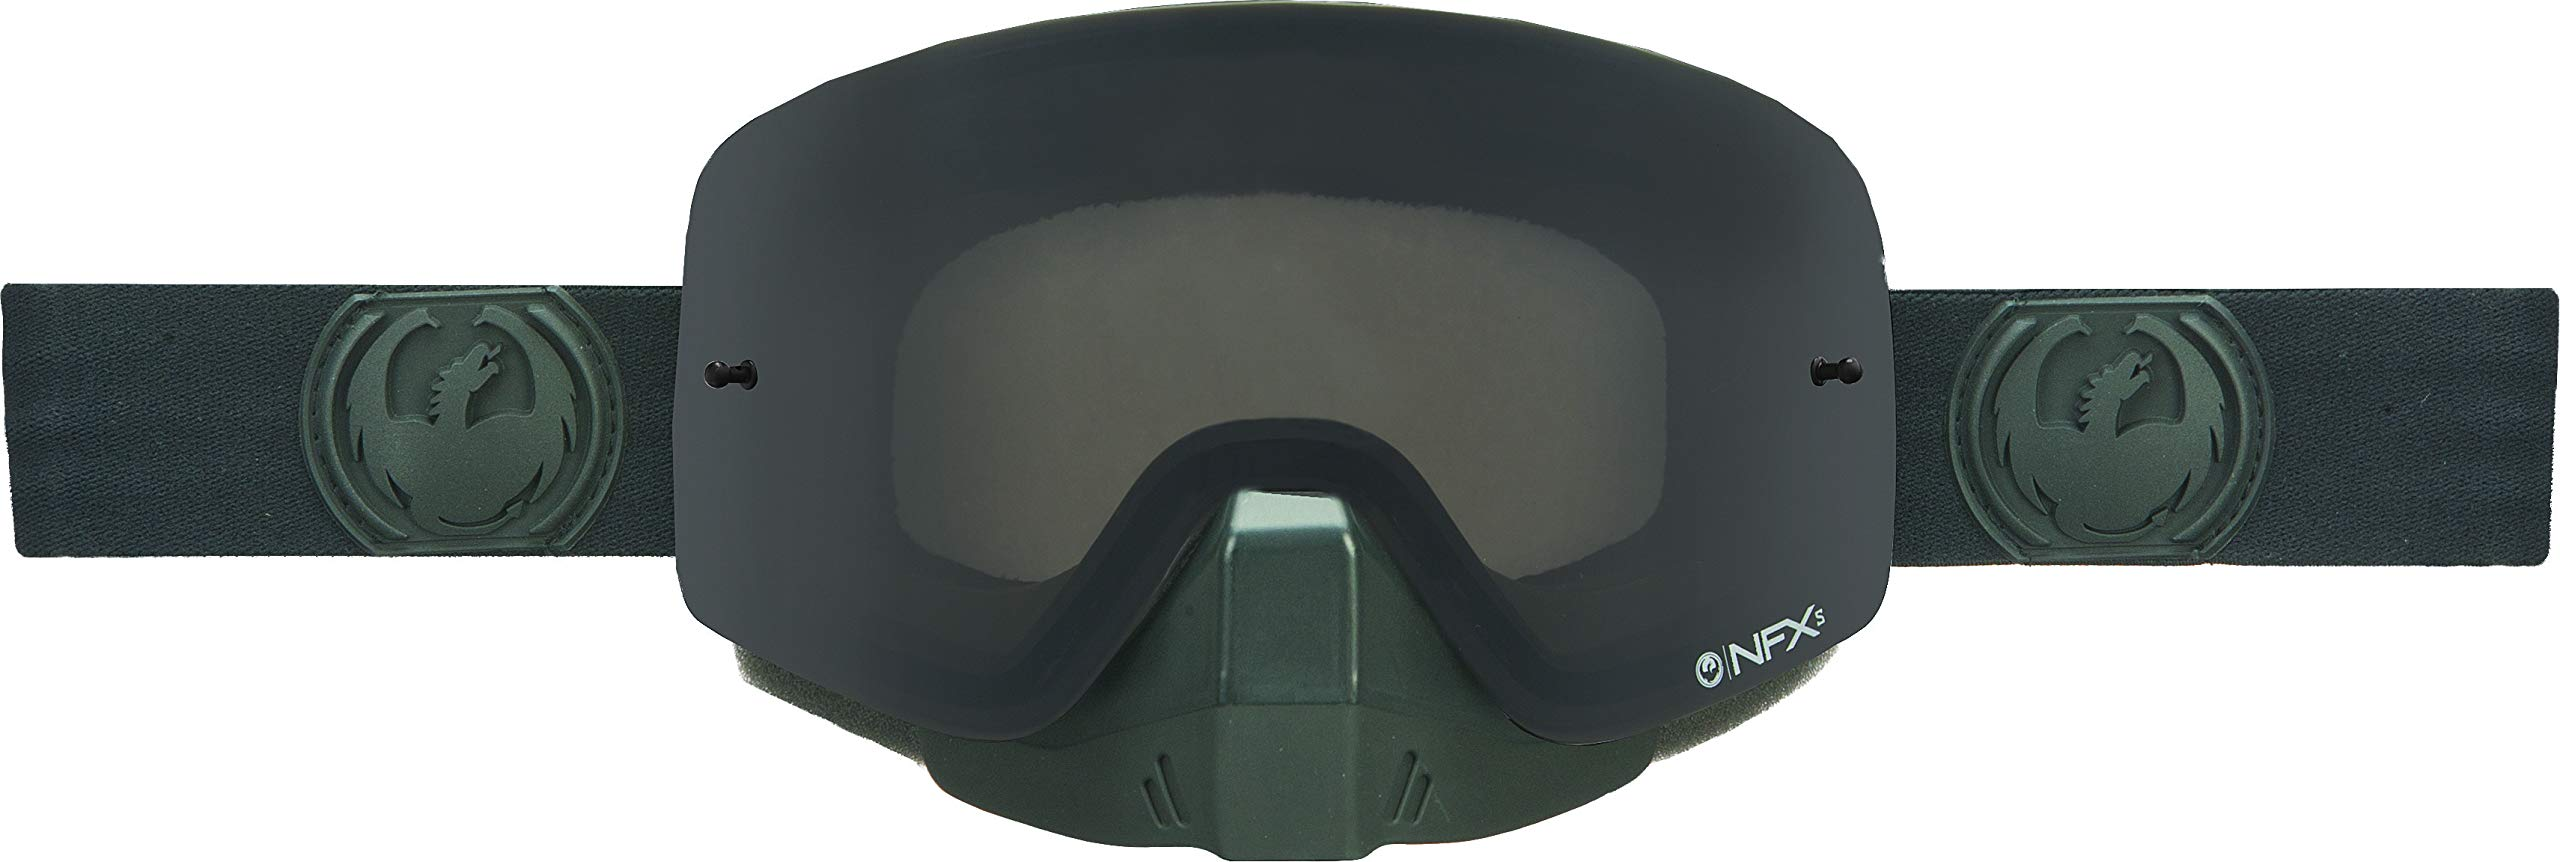 Dragon Alliance Unisex-Adult Nfxs Snow Goggle Knight Rider Kit/Poly Lenses One Size